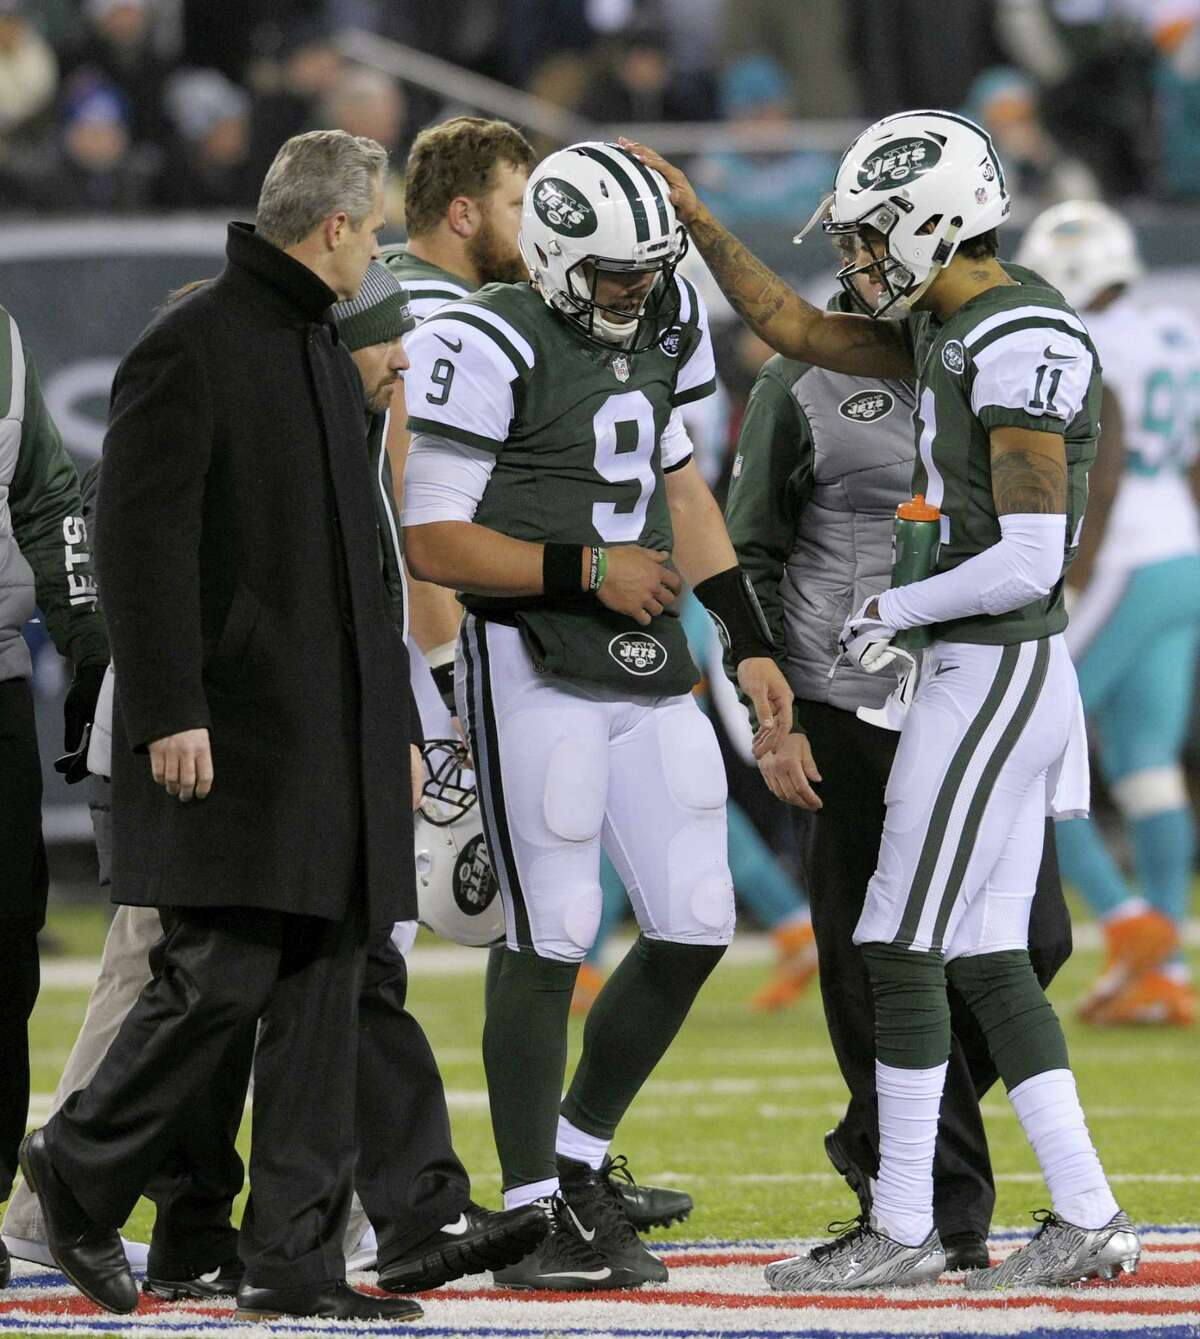 Jets quarterback Bryce Petty (9) walks off the field after getting injured during Saturday's game against the Dolphins.